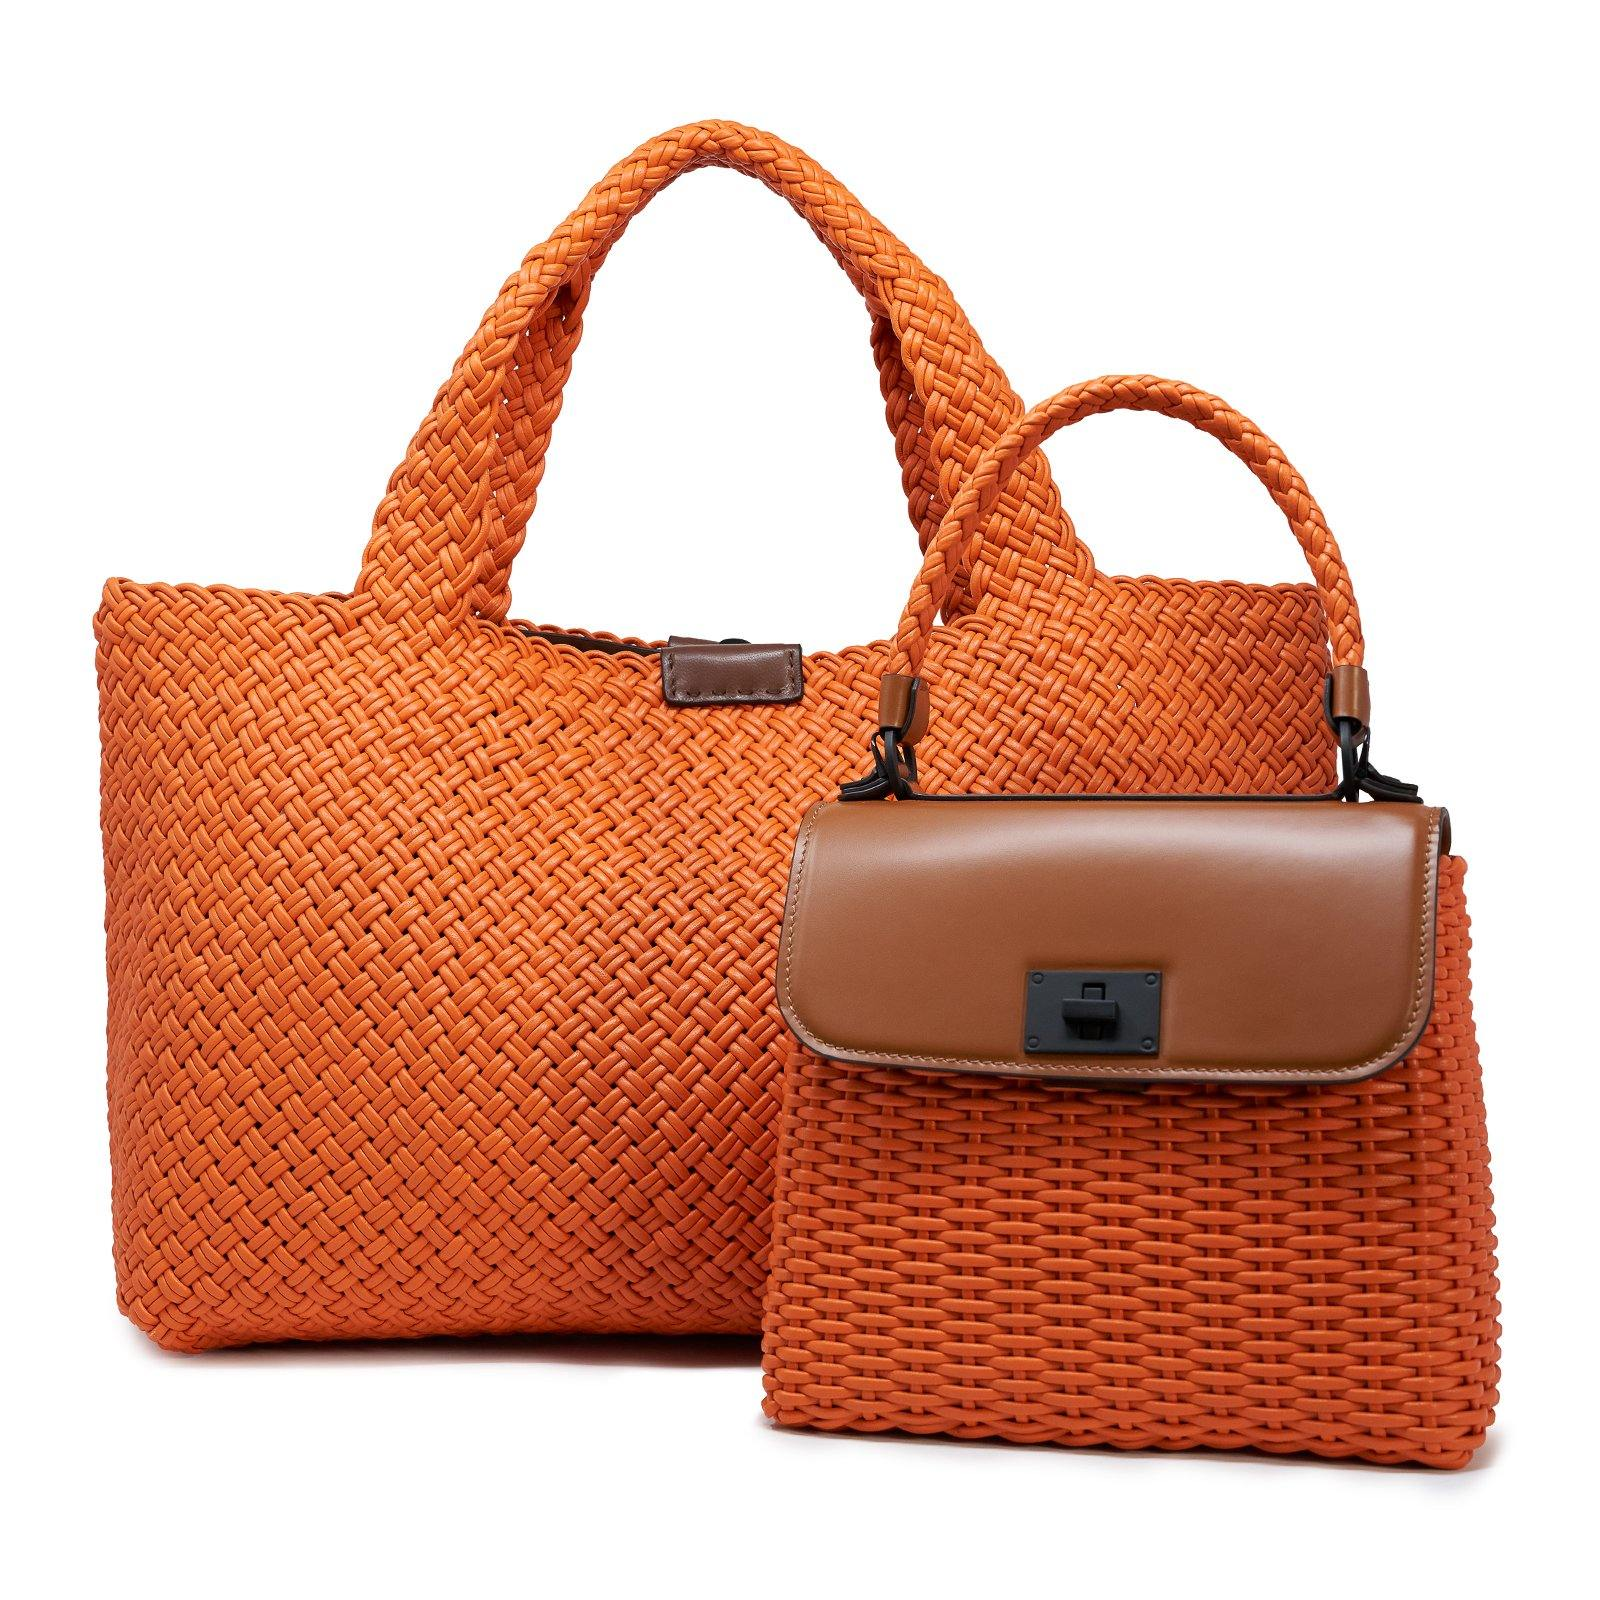 Women Leather Orange Intreccio Fettuccina Bag